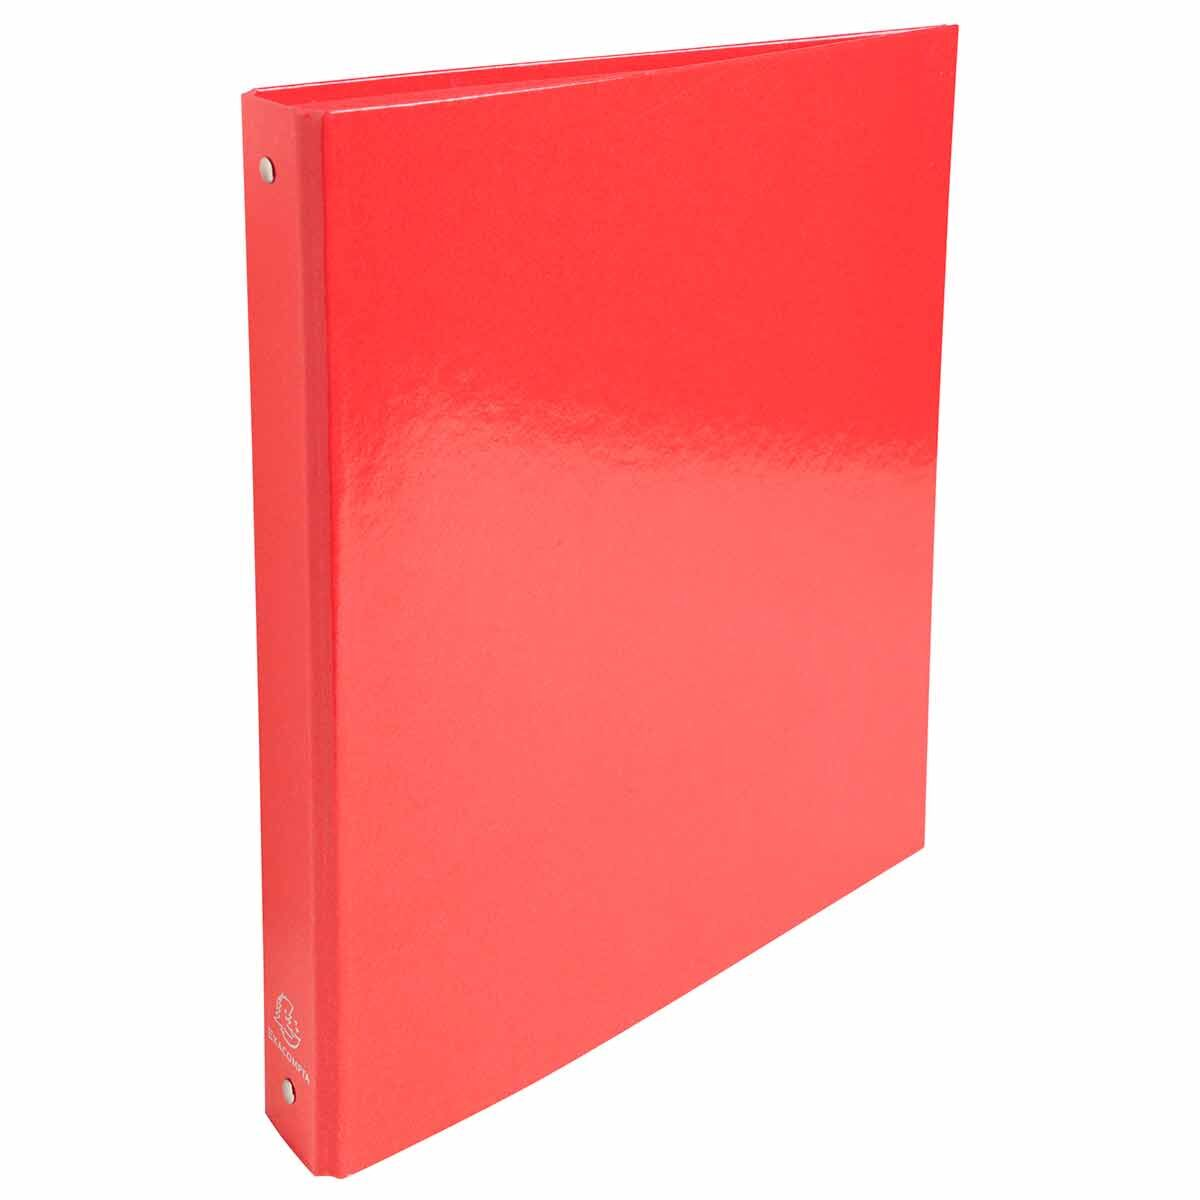 Exacompta Iderama Plastic Coated Ring Binder 4 Ring 30mm A4 Pack of 10 Red